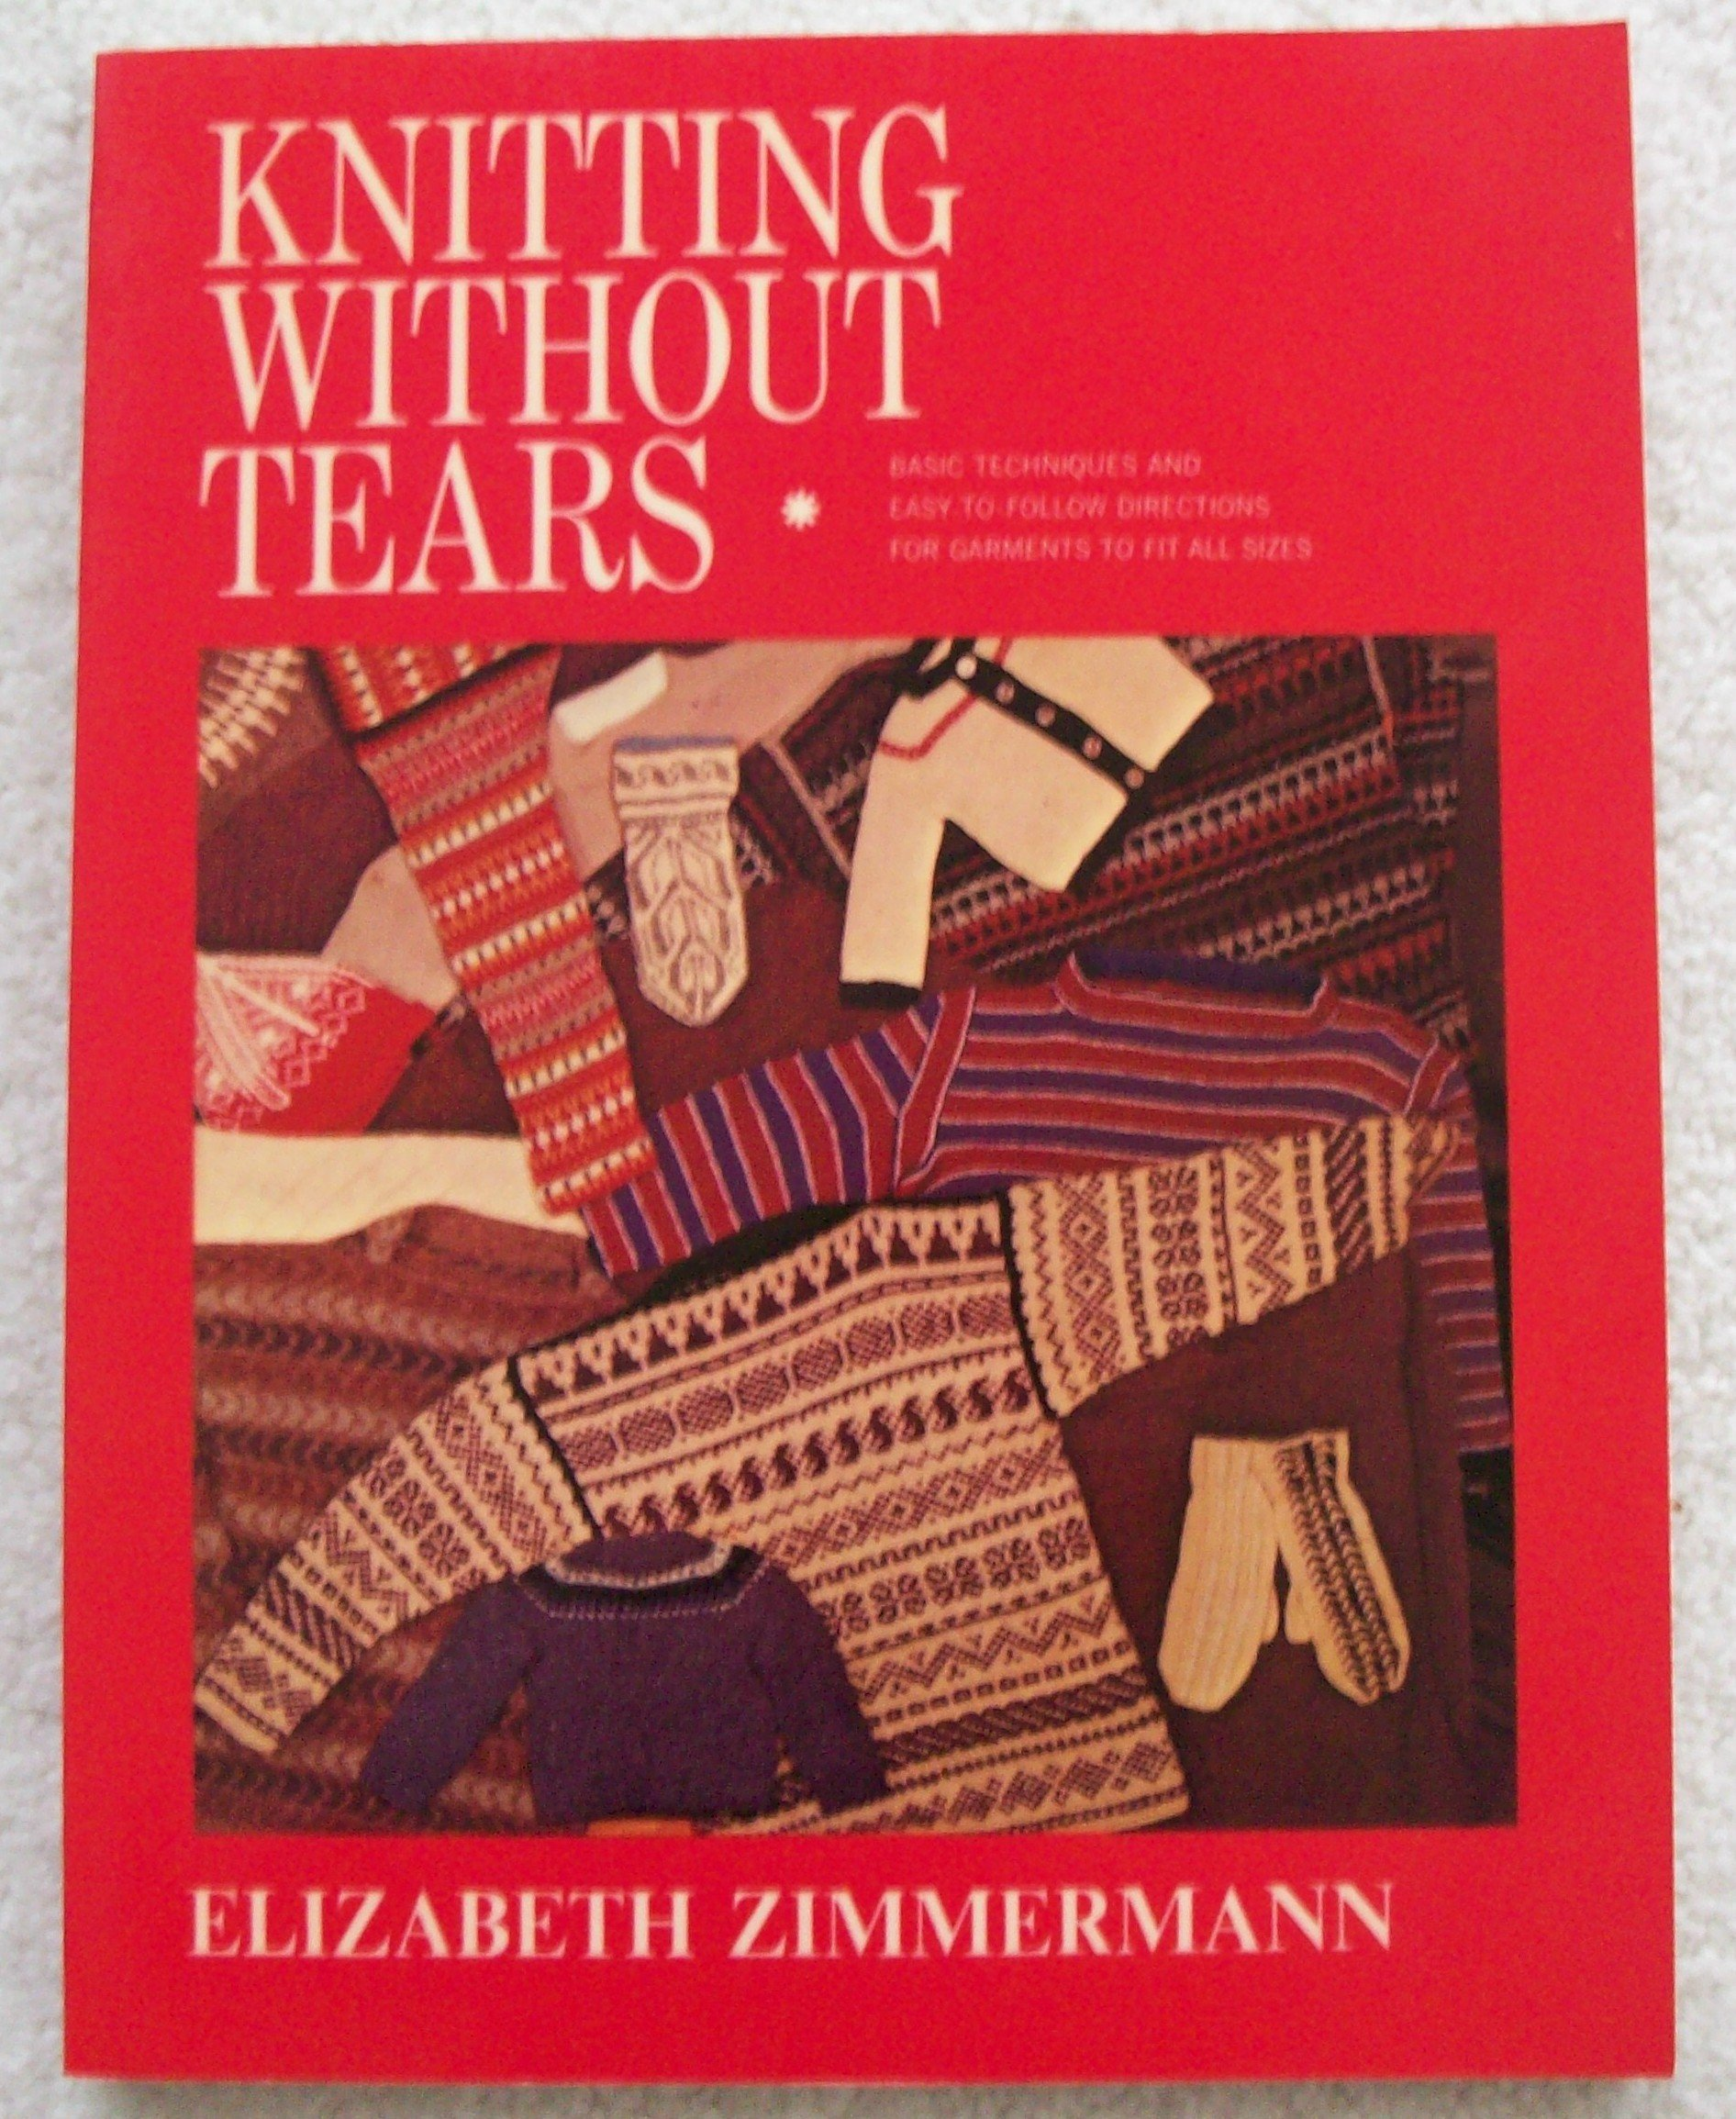 d6aee810a Knitting Without Tears  Elizabeth Zimmermann  8601400632499  Amazon ...